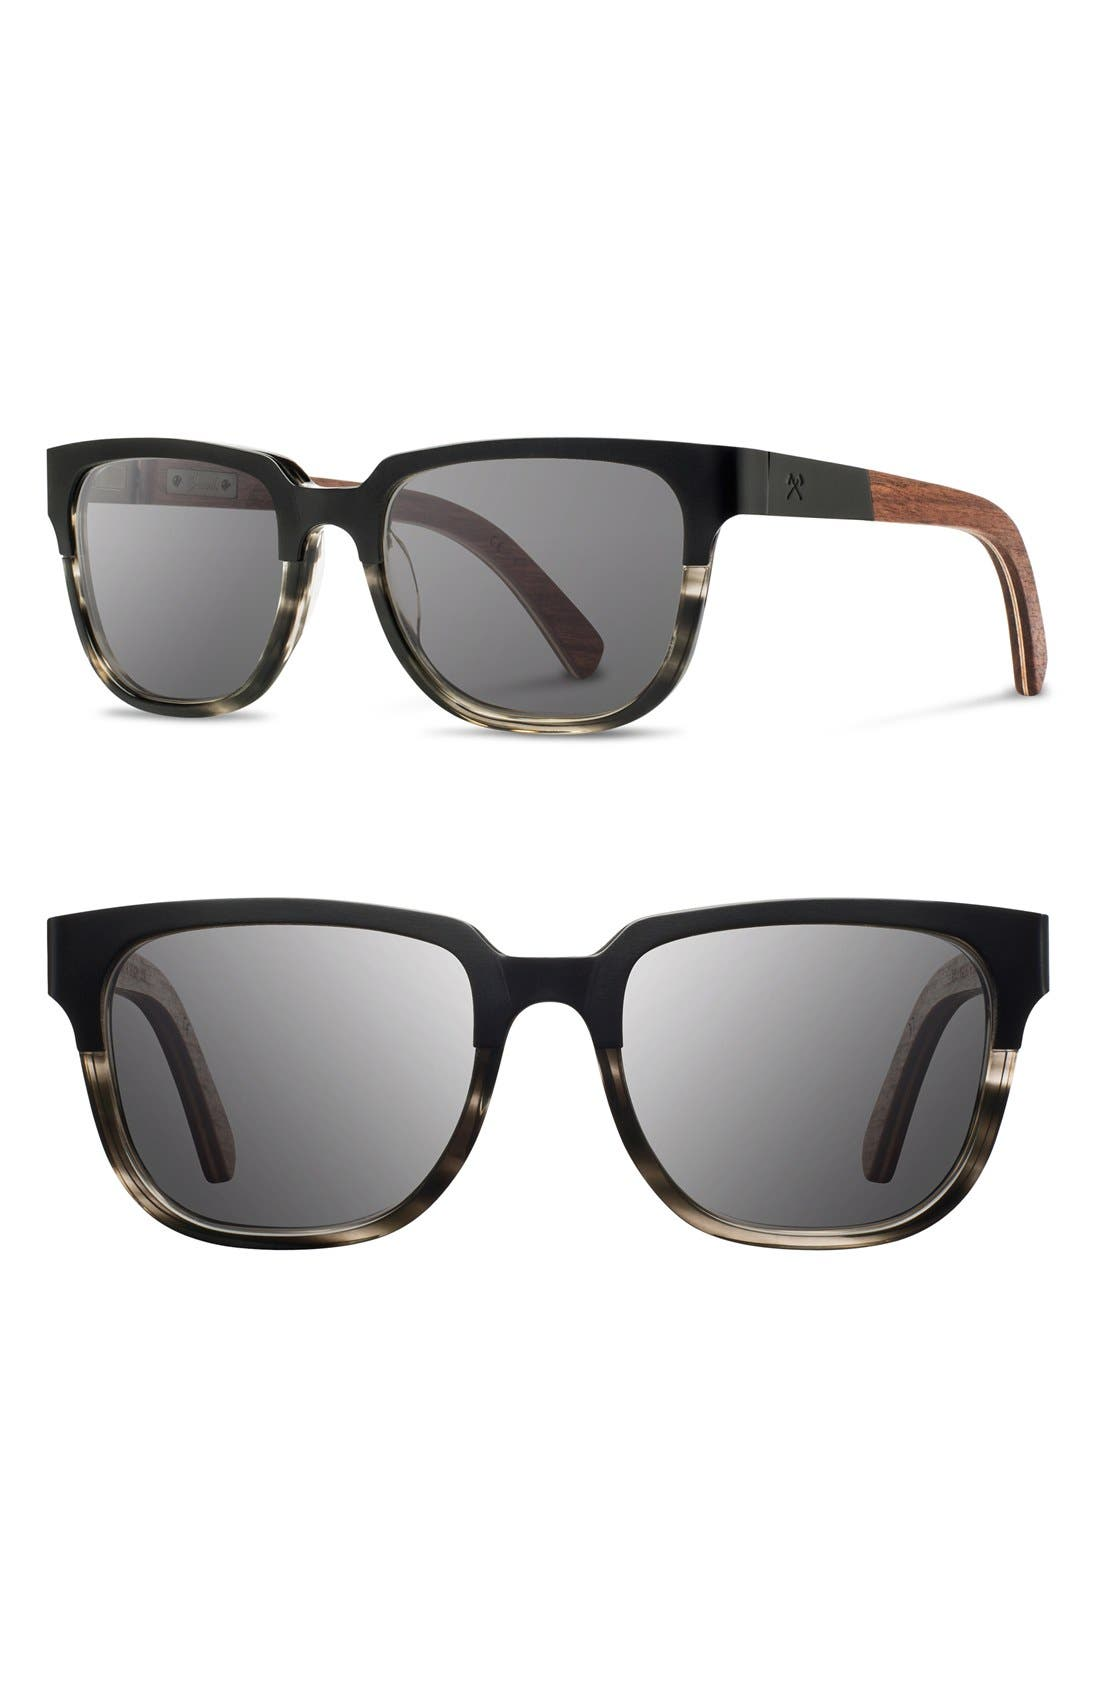 'Prescott' 52mm Titanium & Wood Sunglasses,                             Main thumbnail 1, color,                             001